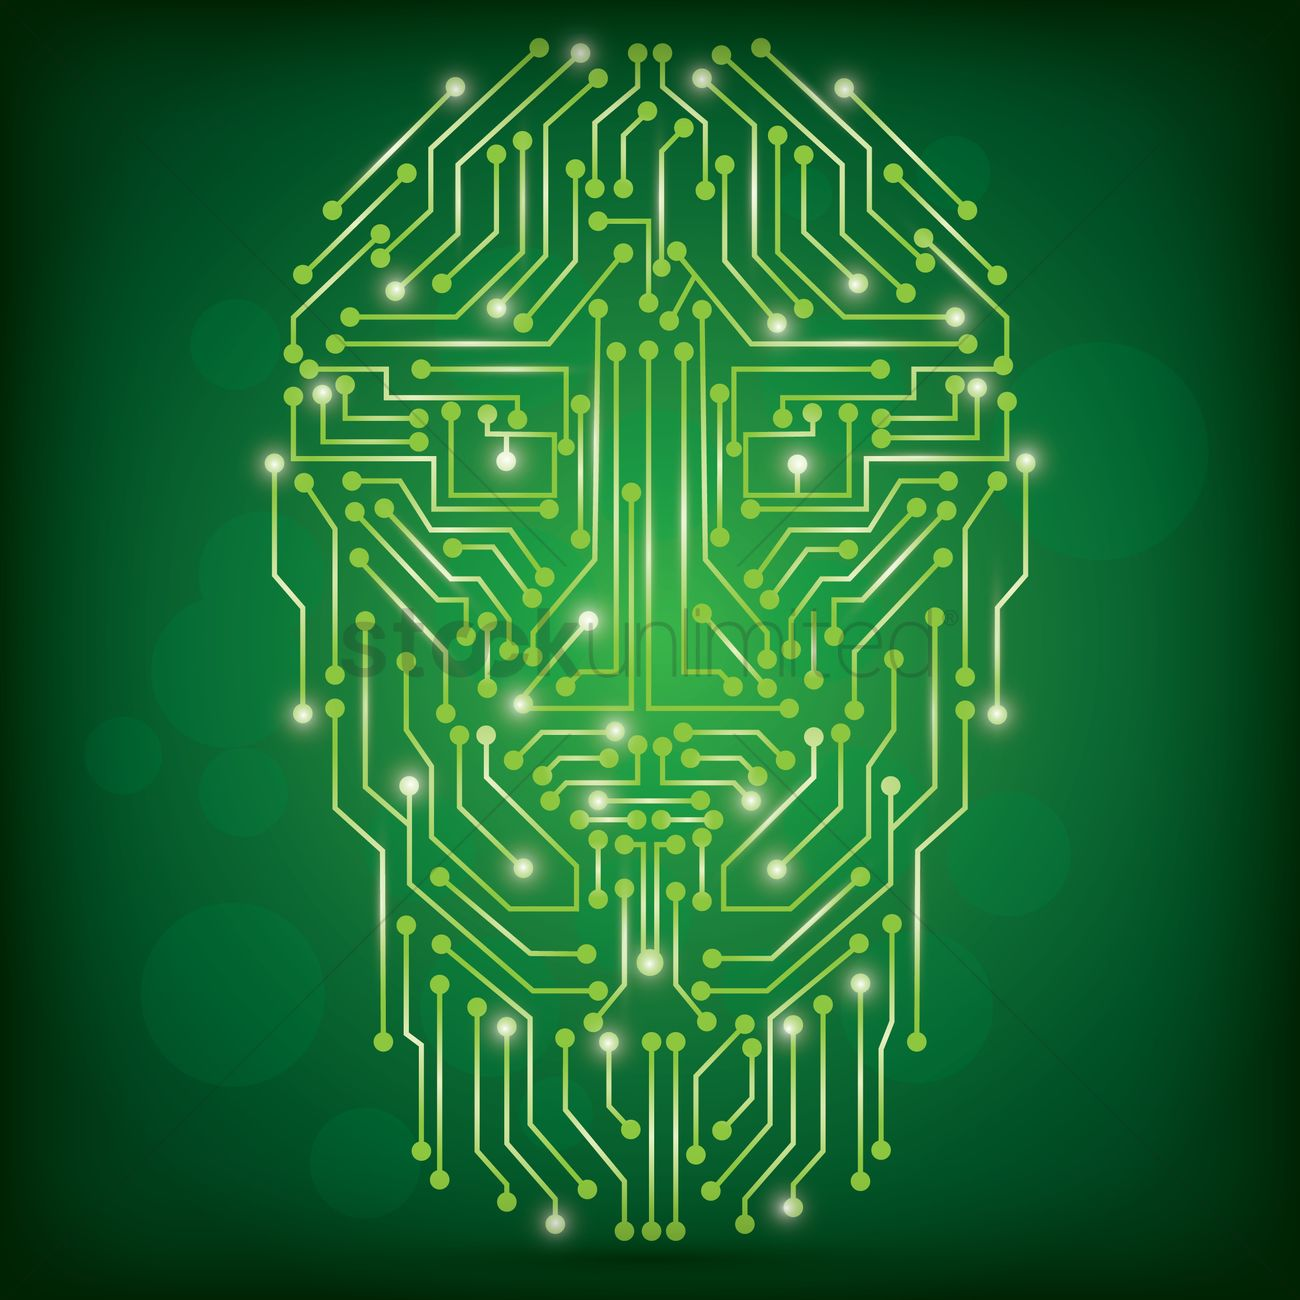 Circuit Board Human Face Design Vector Image 1948280 Stockunlimited Circuitboard Graphic